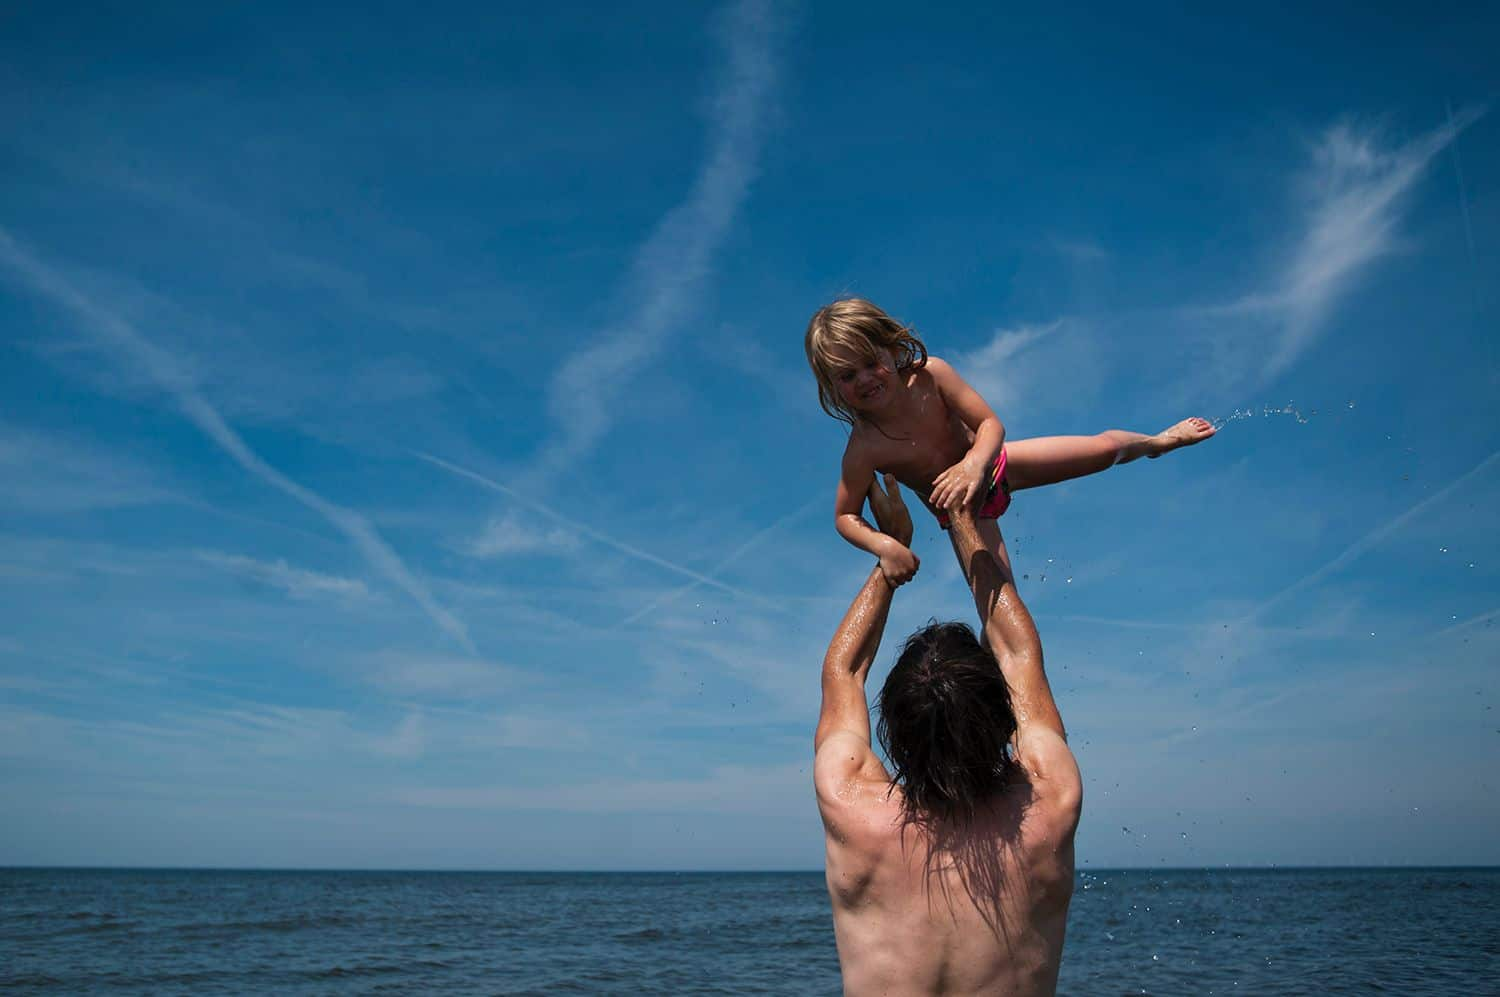 A shirtless dad tosses his young child into the blue sky above a lake